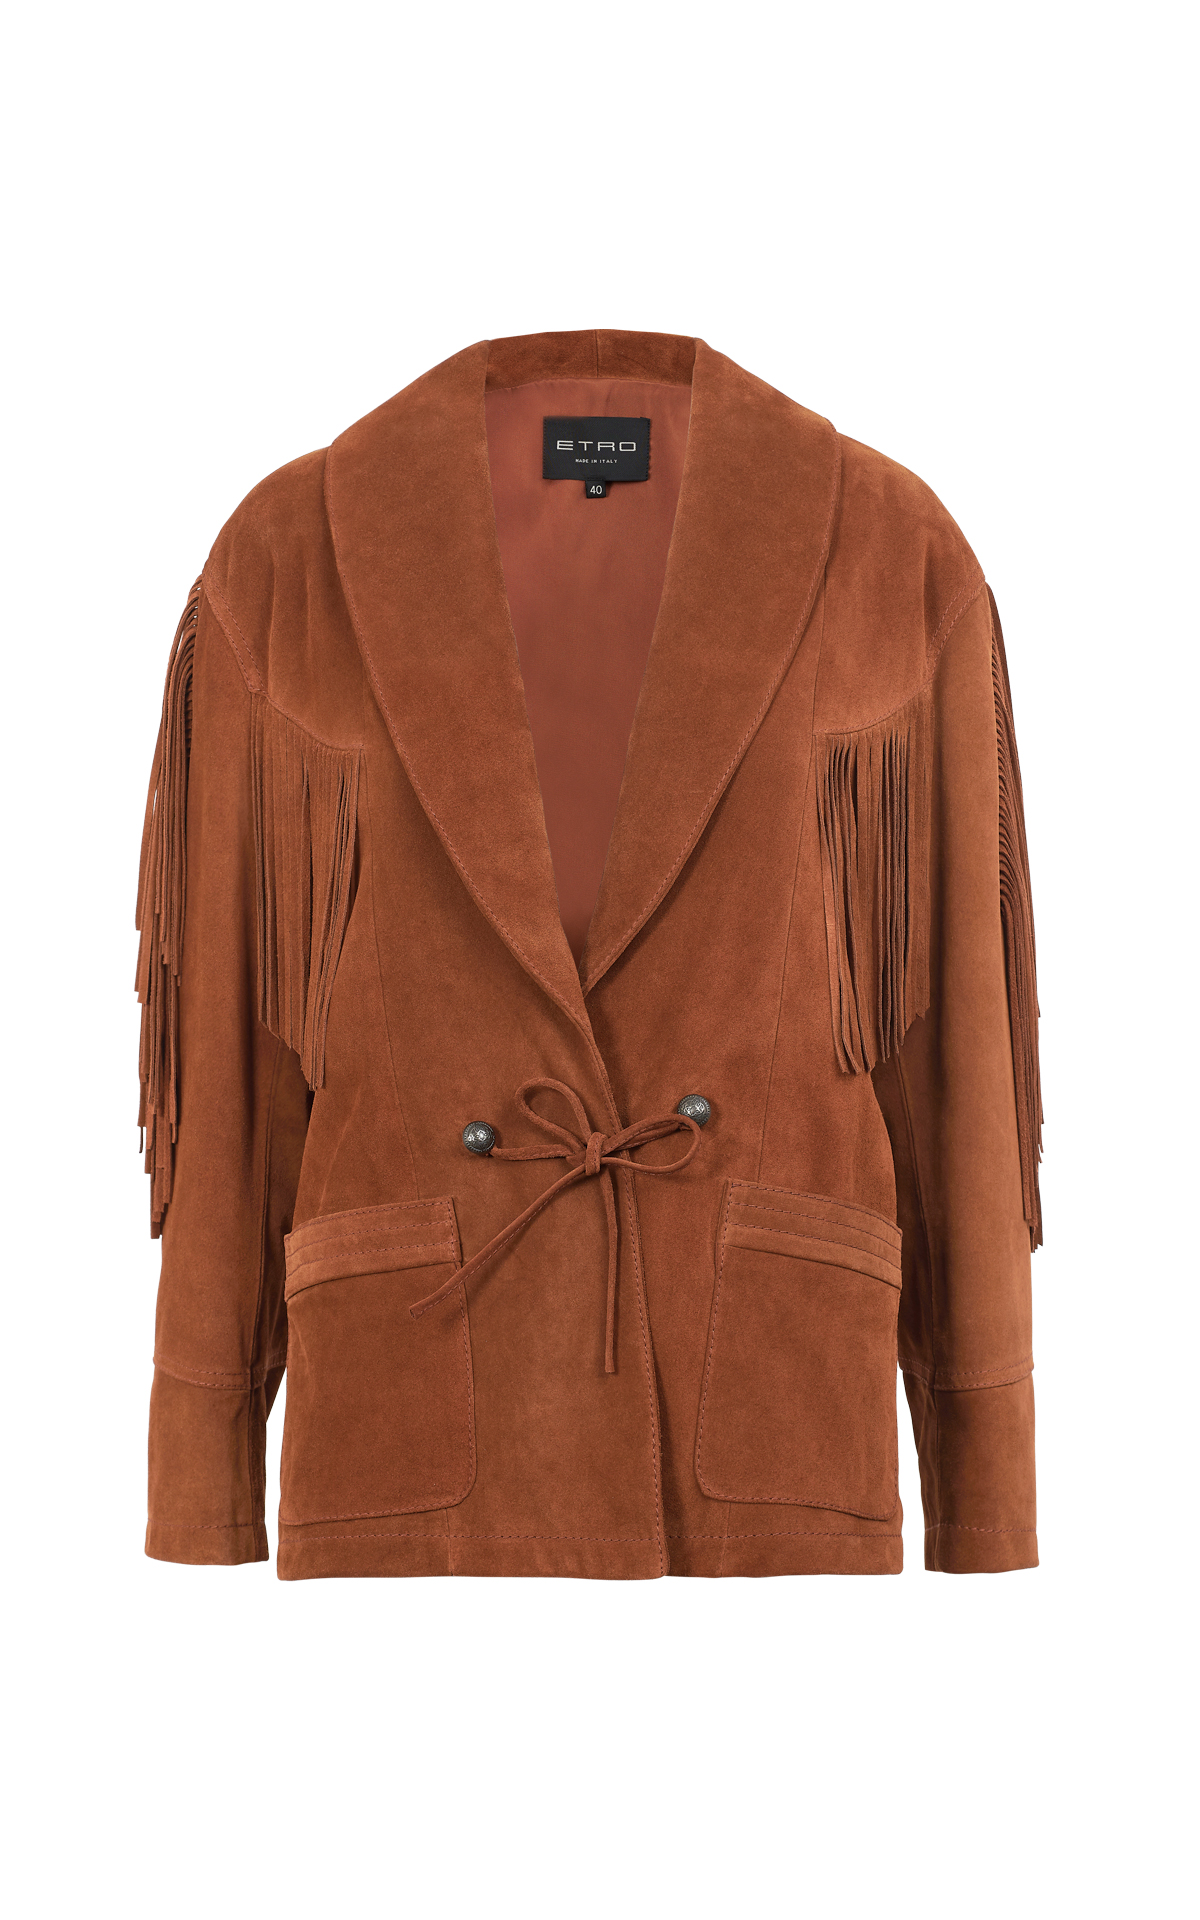 Fringed suede jacket Etro